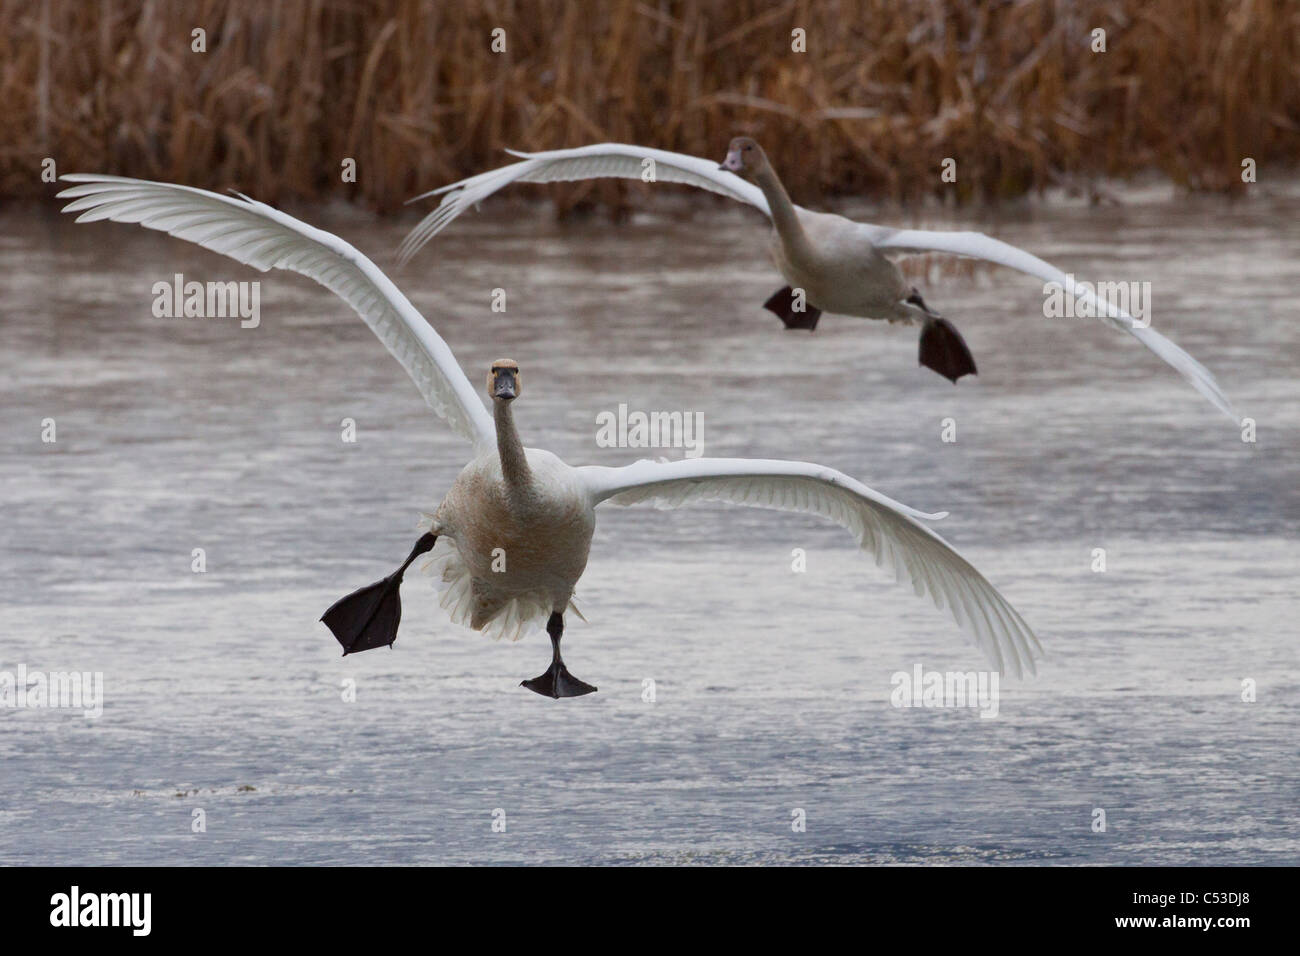 Two Tundra Swans fly over a pond near Portage, Southcentral Alaska, Autumn - Stock Image